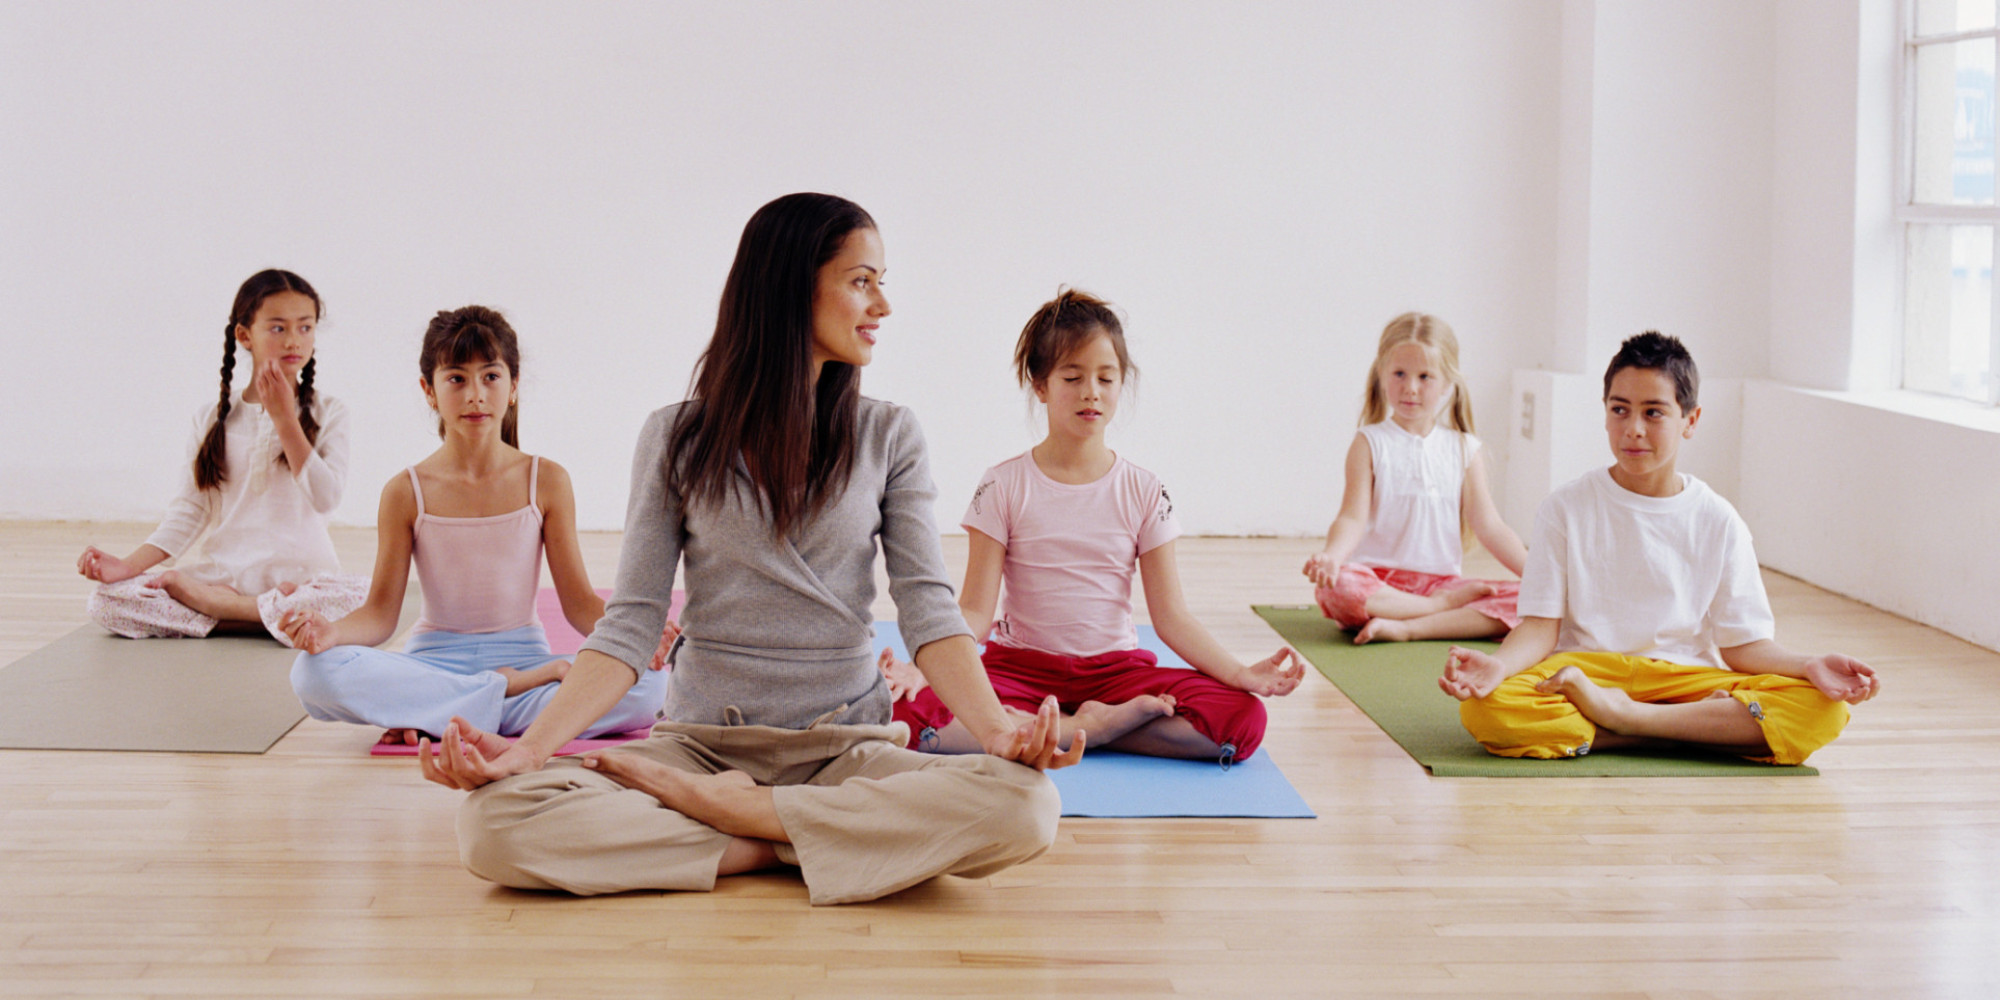 simple and Mindfulness exercise for Adults, Teens, and children.